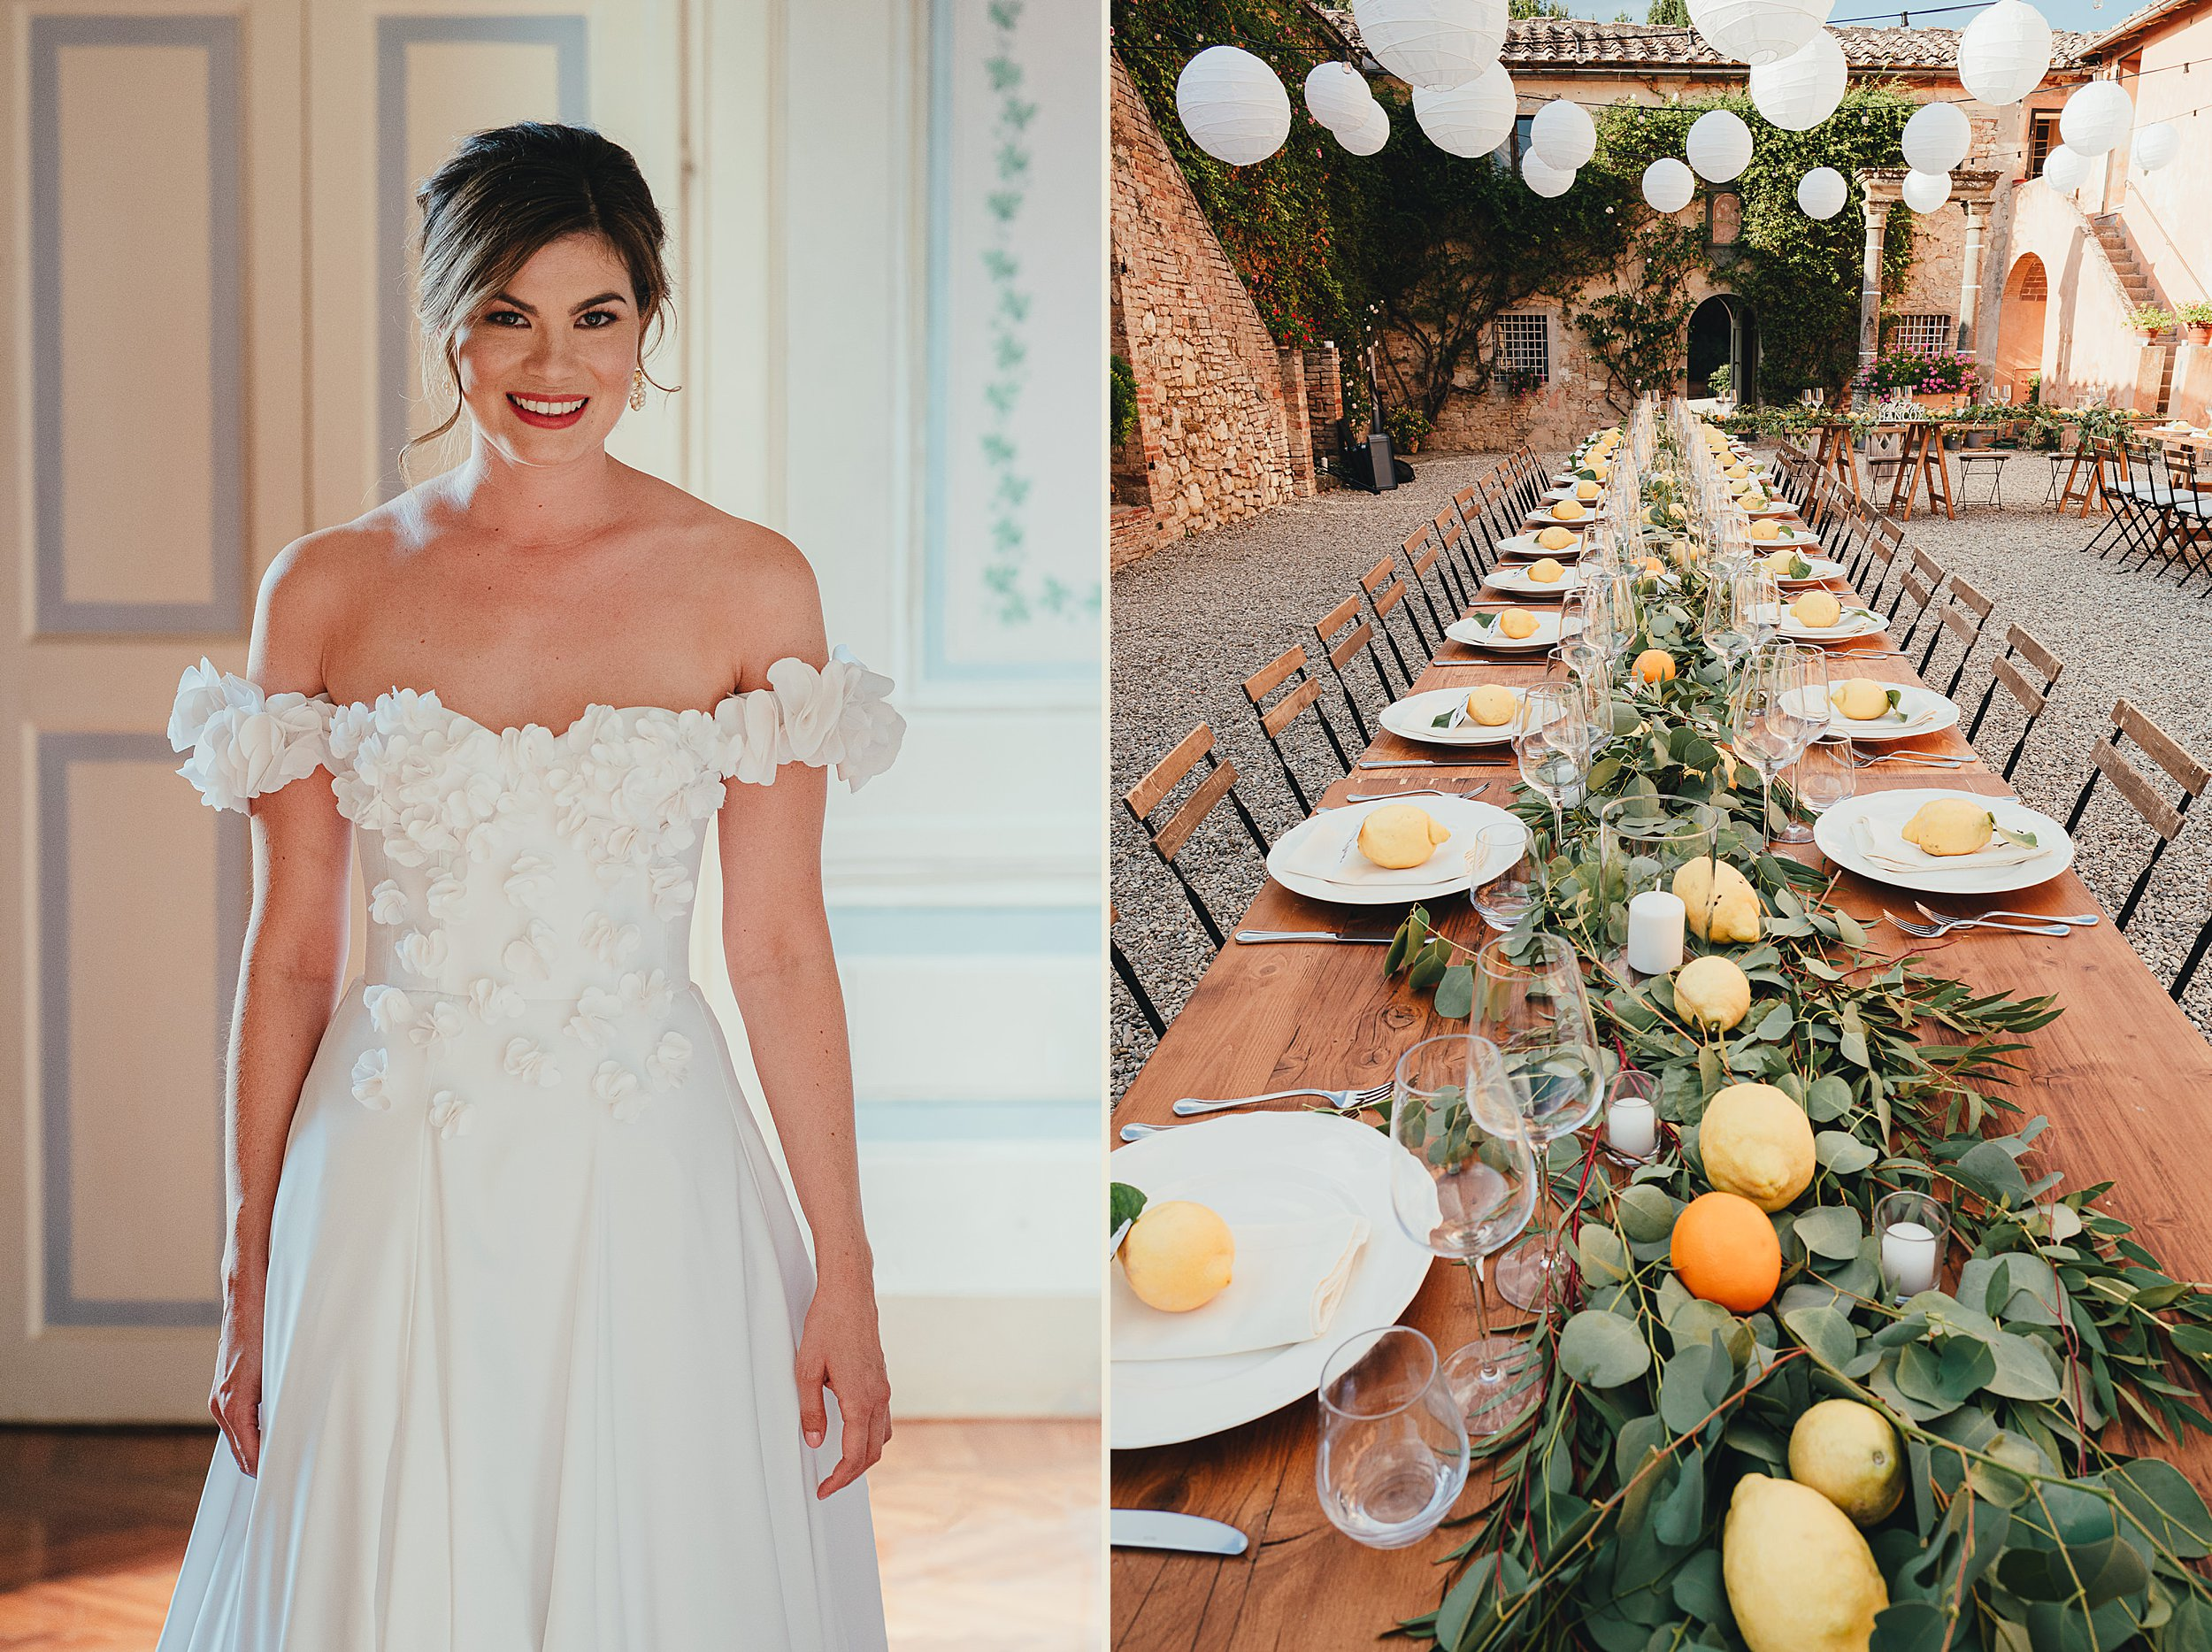 Tuscan Villa Wedding - Portrait of the Bride at Villa Catignano